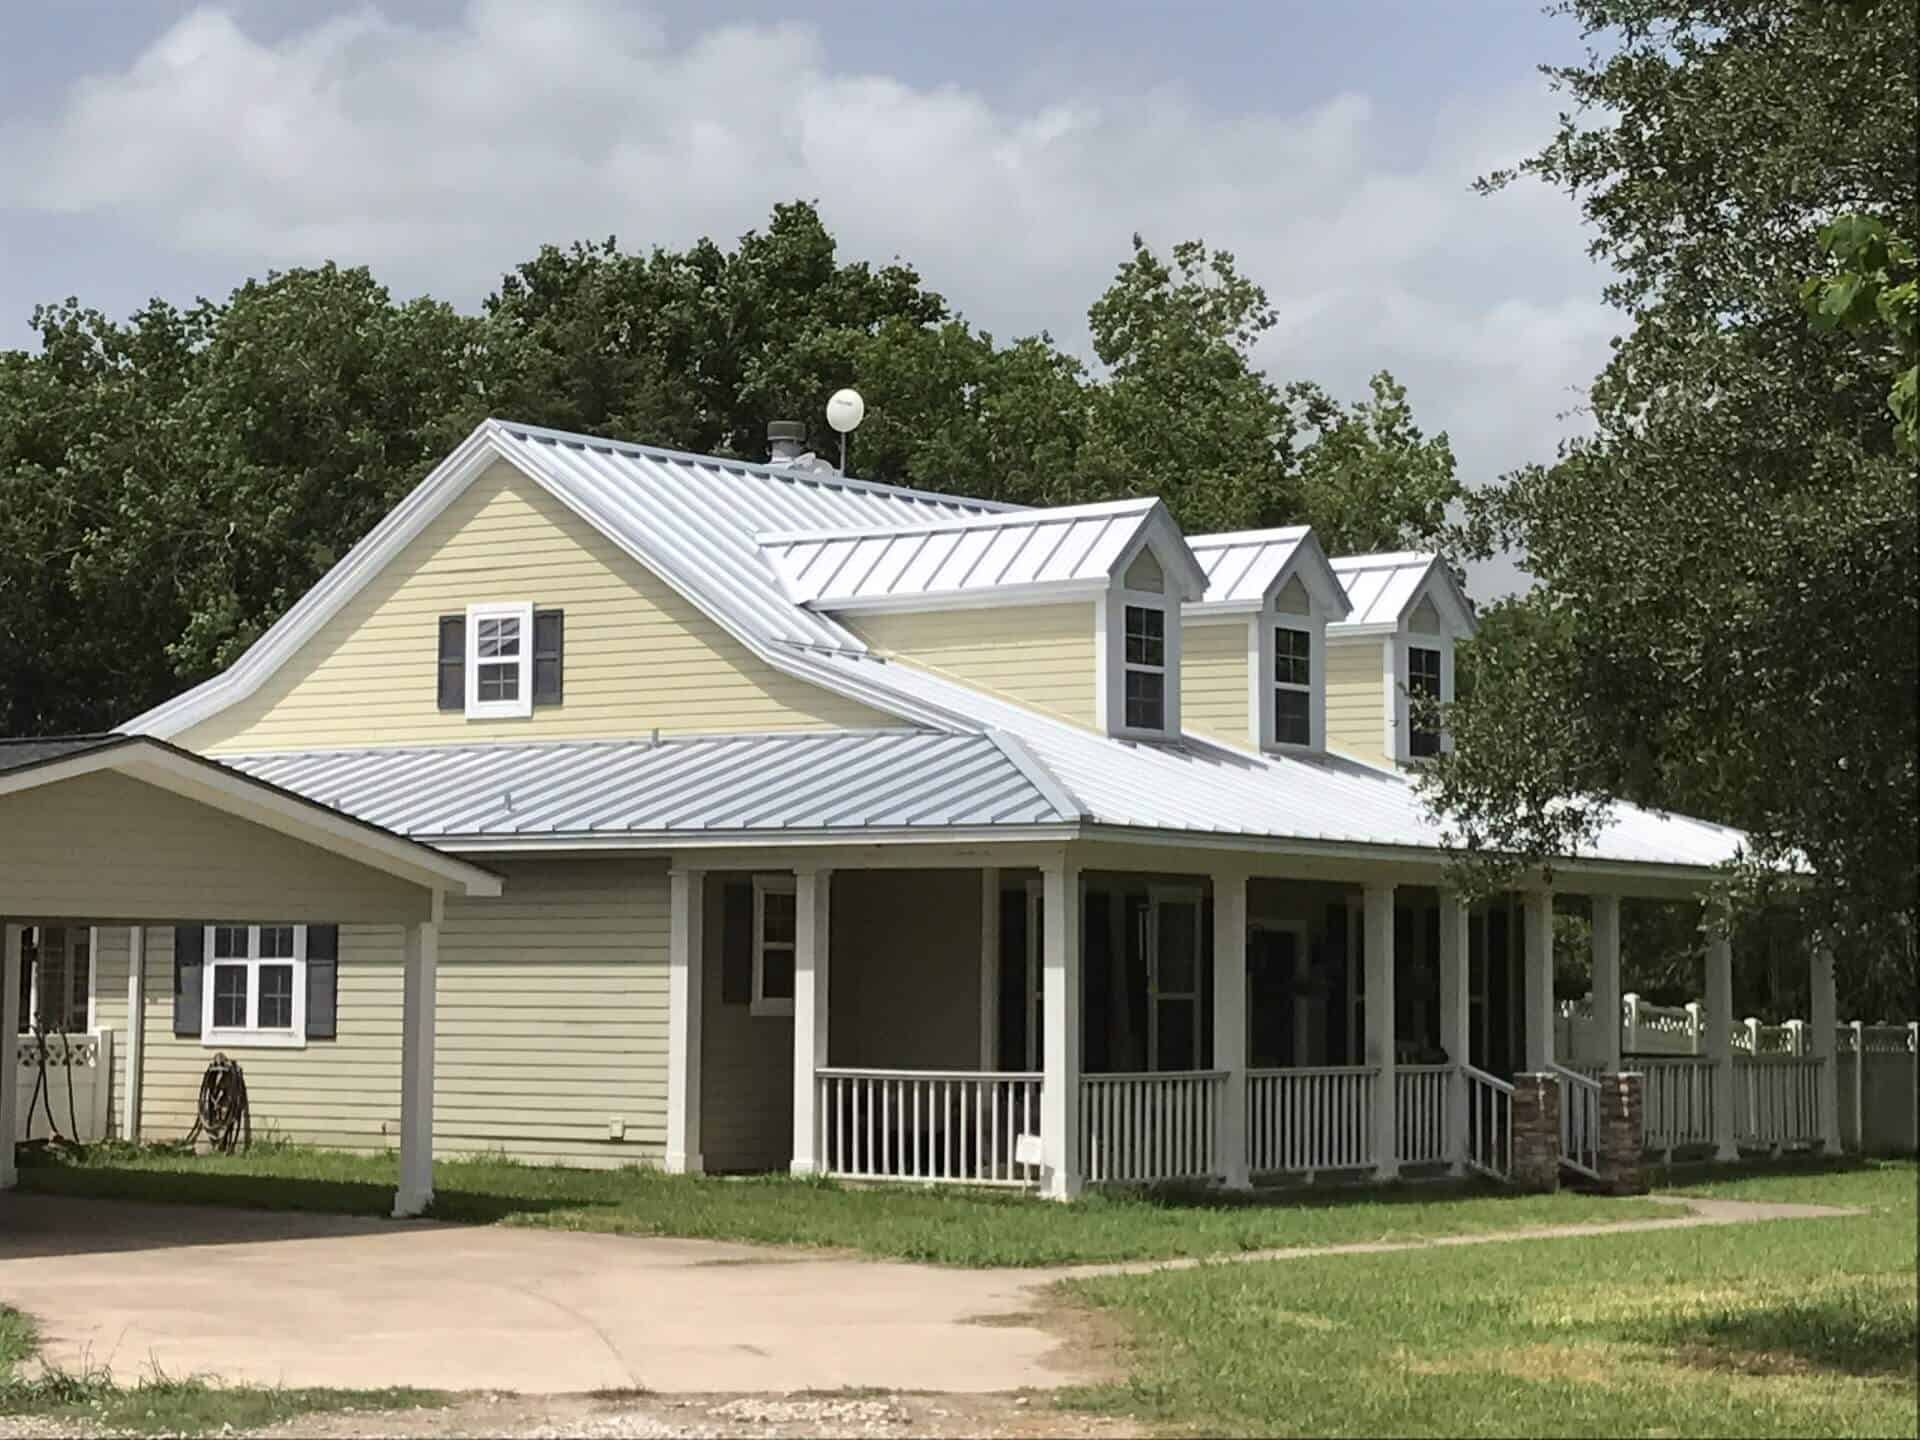 Medallion-Lok Standing Seam Metal Roof - Galvalume Plus